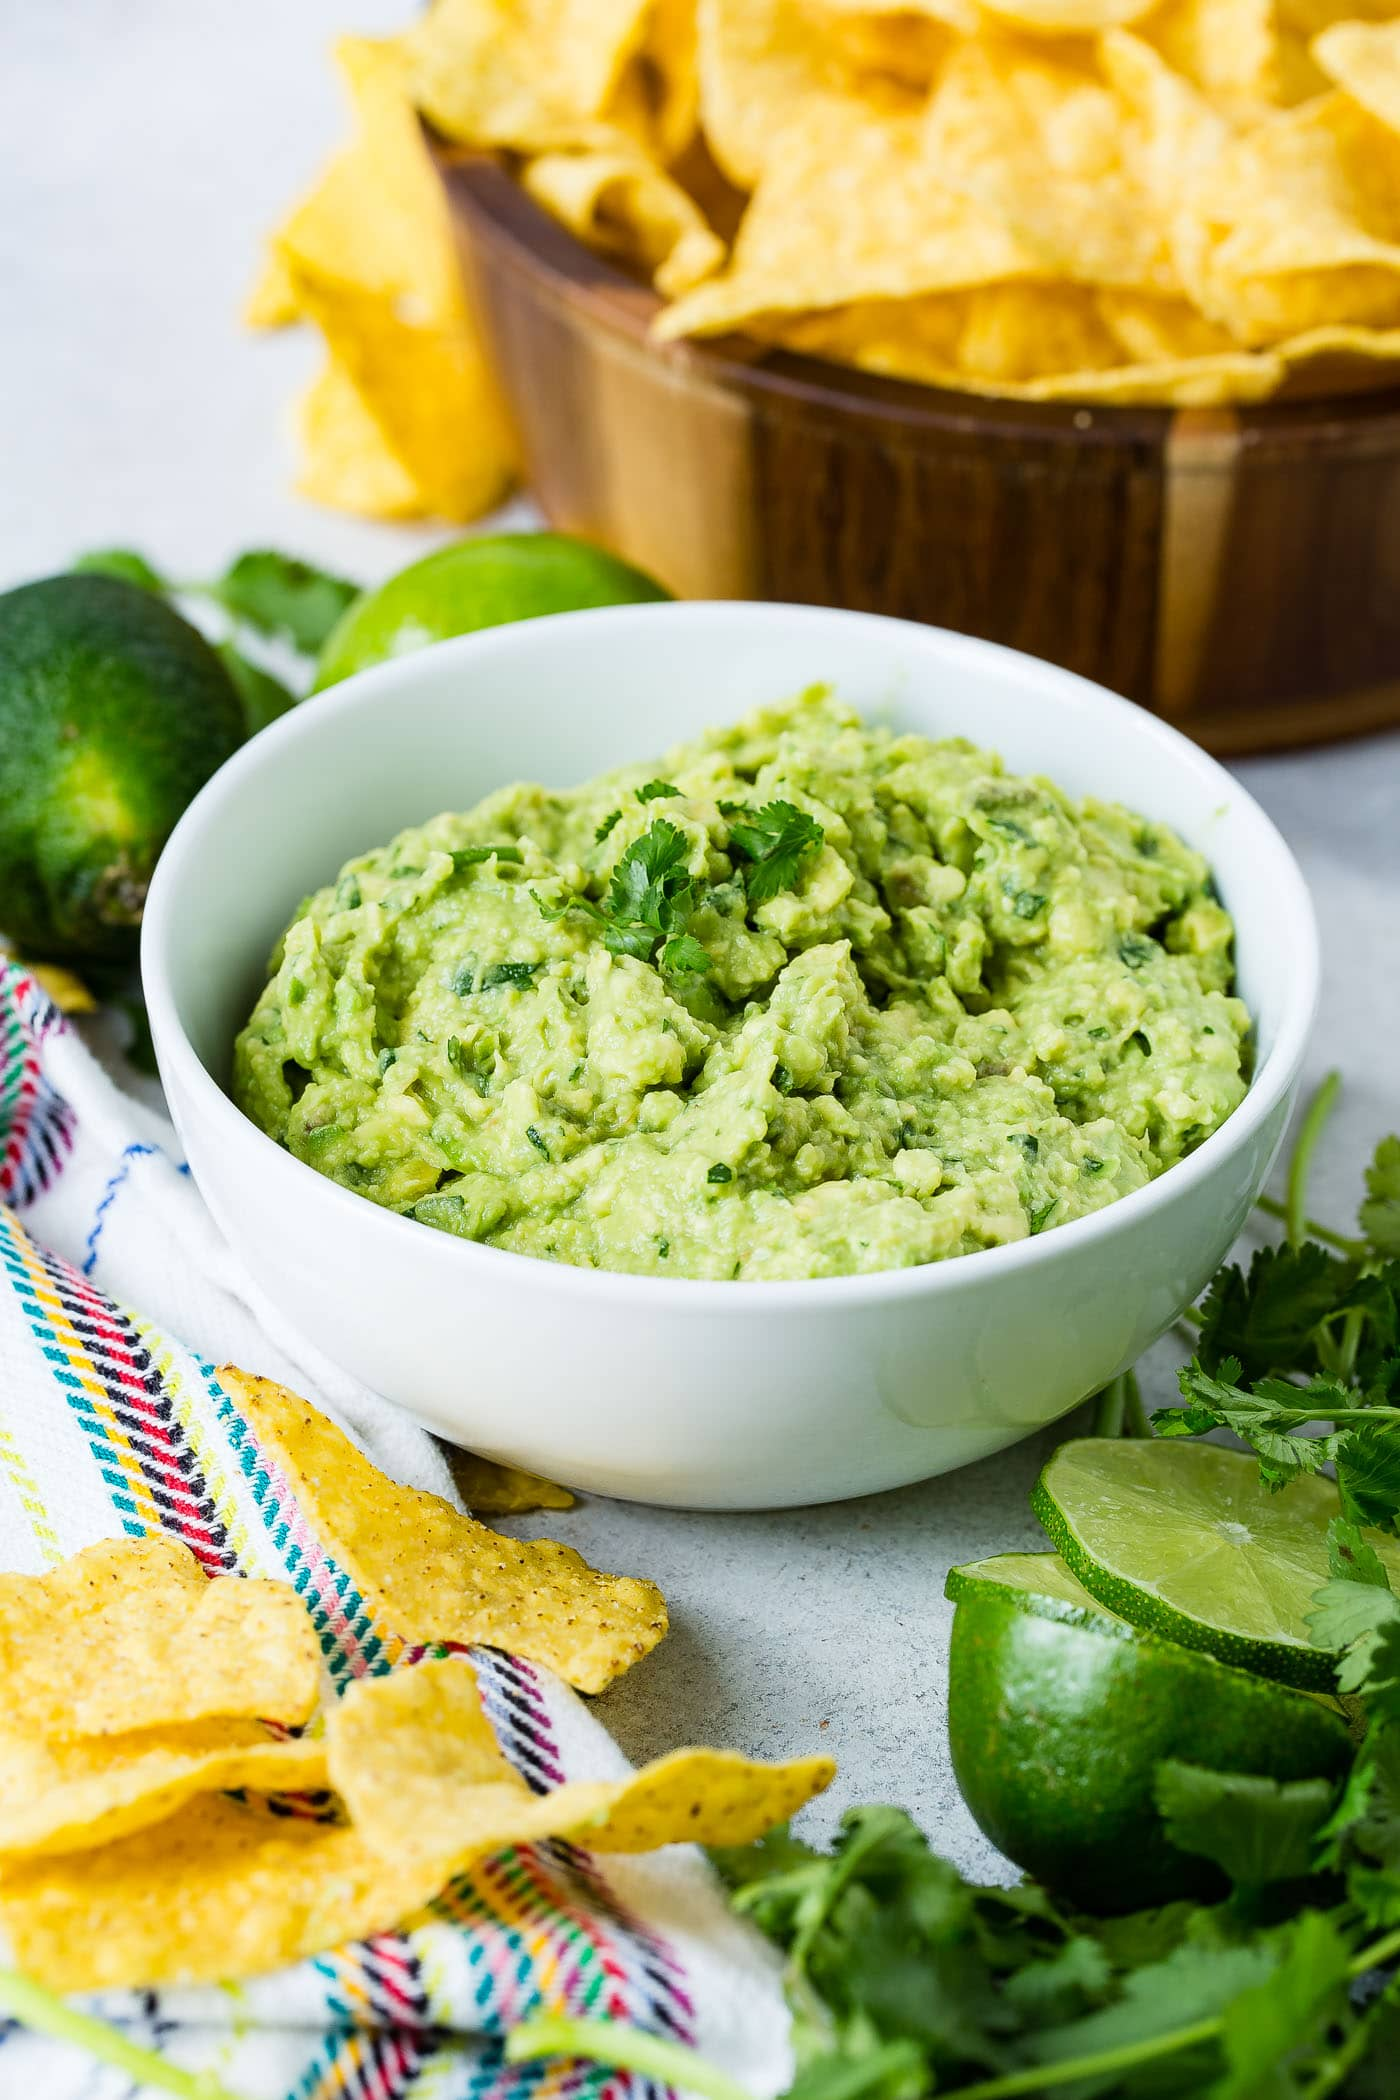 A bowl of fresh guacamole with a few cilantro leaves on top. There are tortilla chips scattered on the table in front of the bowl and a partially sliced lime next to the chips. There are two whole lime and a wooden bowl of tortilla chips in the background.